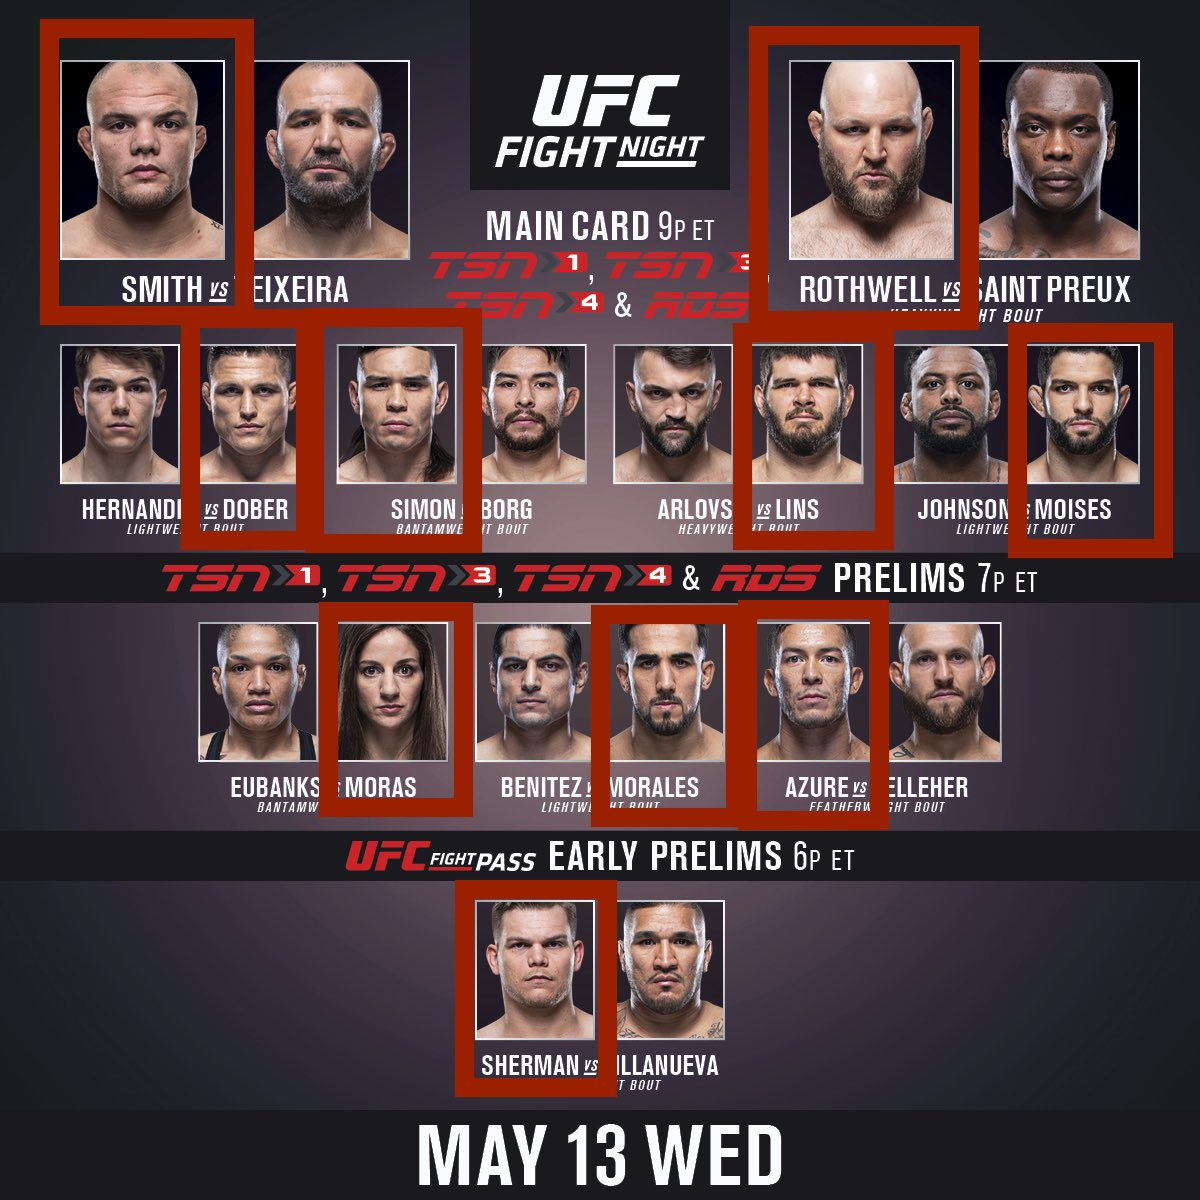 Fights on a Wednesday?!?  HELL YES - LET'S DO THIS!!!!! 👌👊  #UFCJAX https://t.co/a6kzBo7xSd